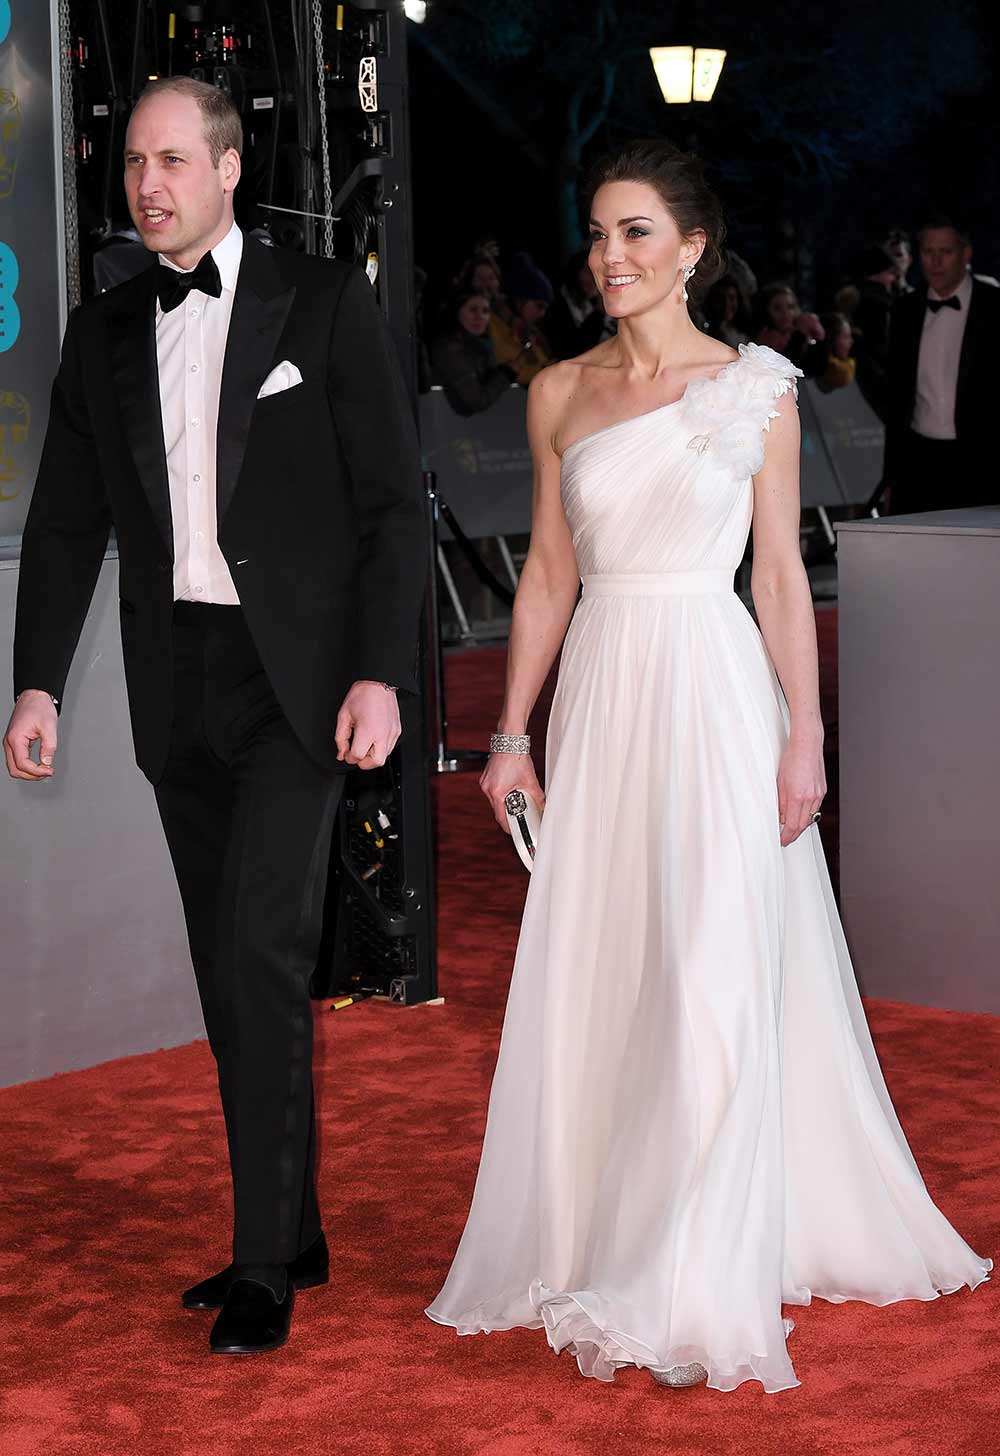 Kate Middleton debuted Princess Diana's diamond and pearl earrings on the BAFTA red carpet Prince-William-Duchess-of-cambridge-catherine-Baftas-red-carpet-2019